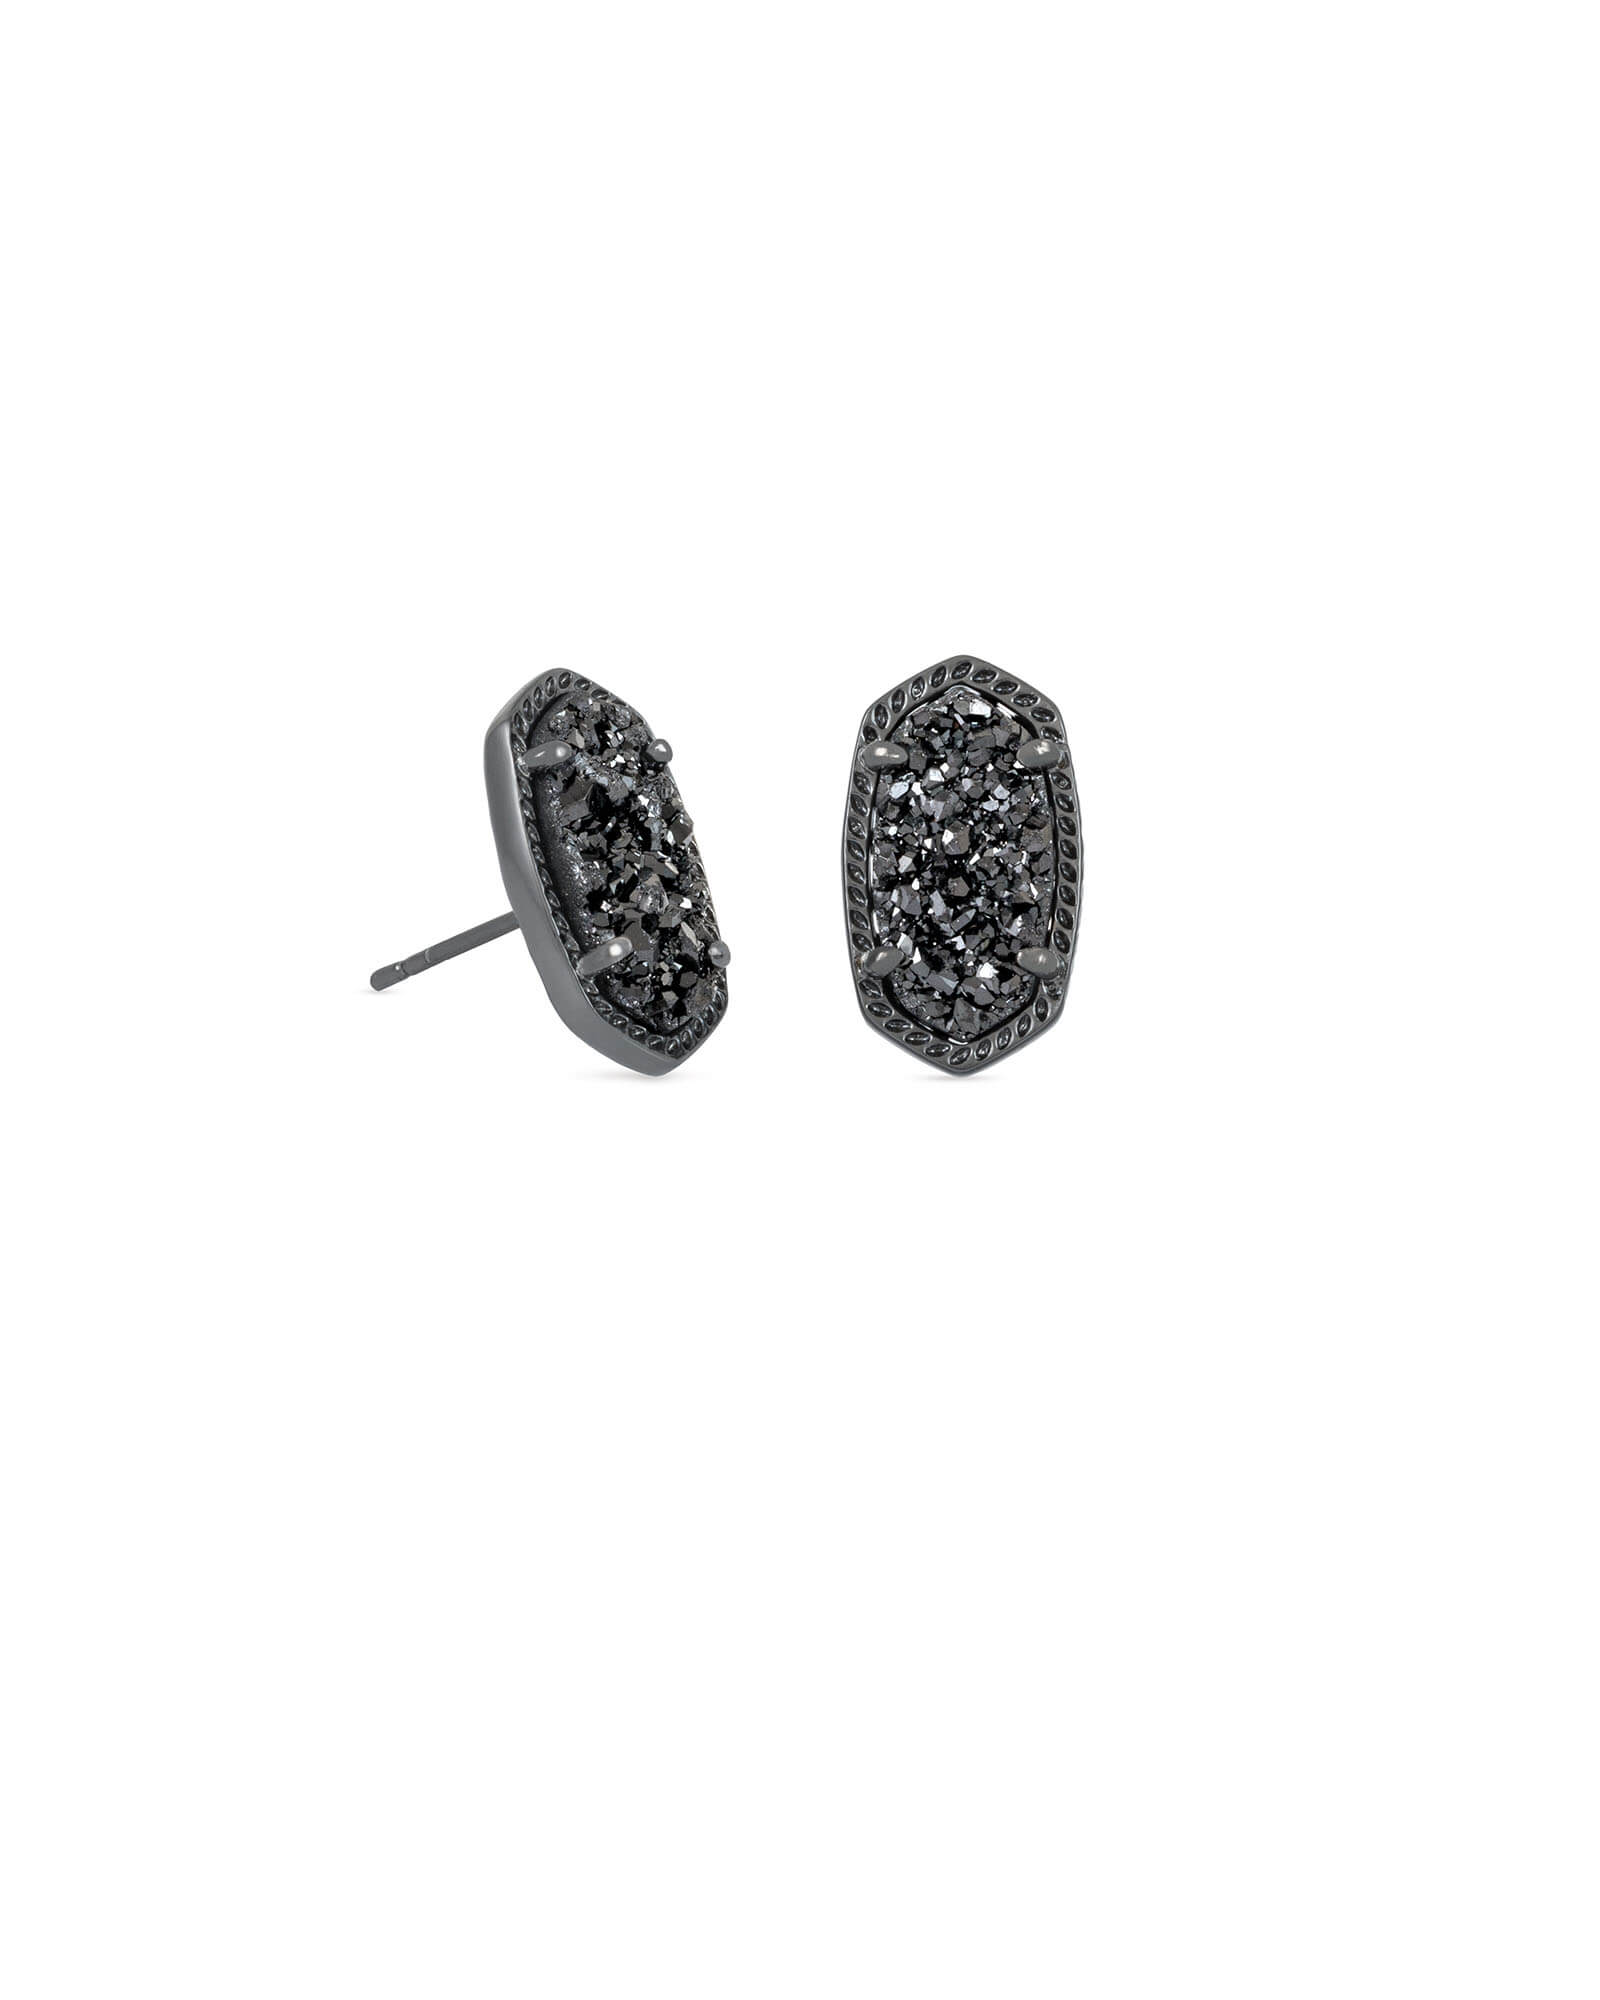 Ellie Stud Earrings in Black Drusy